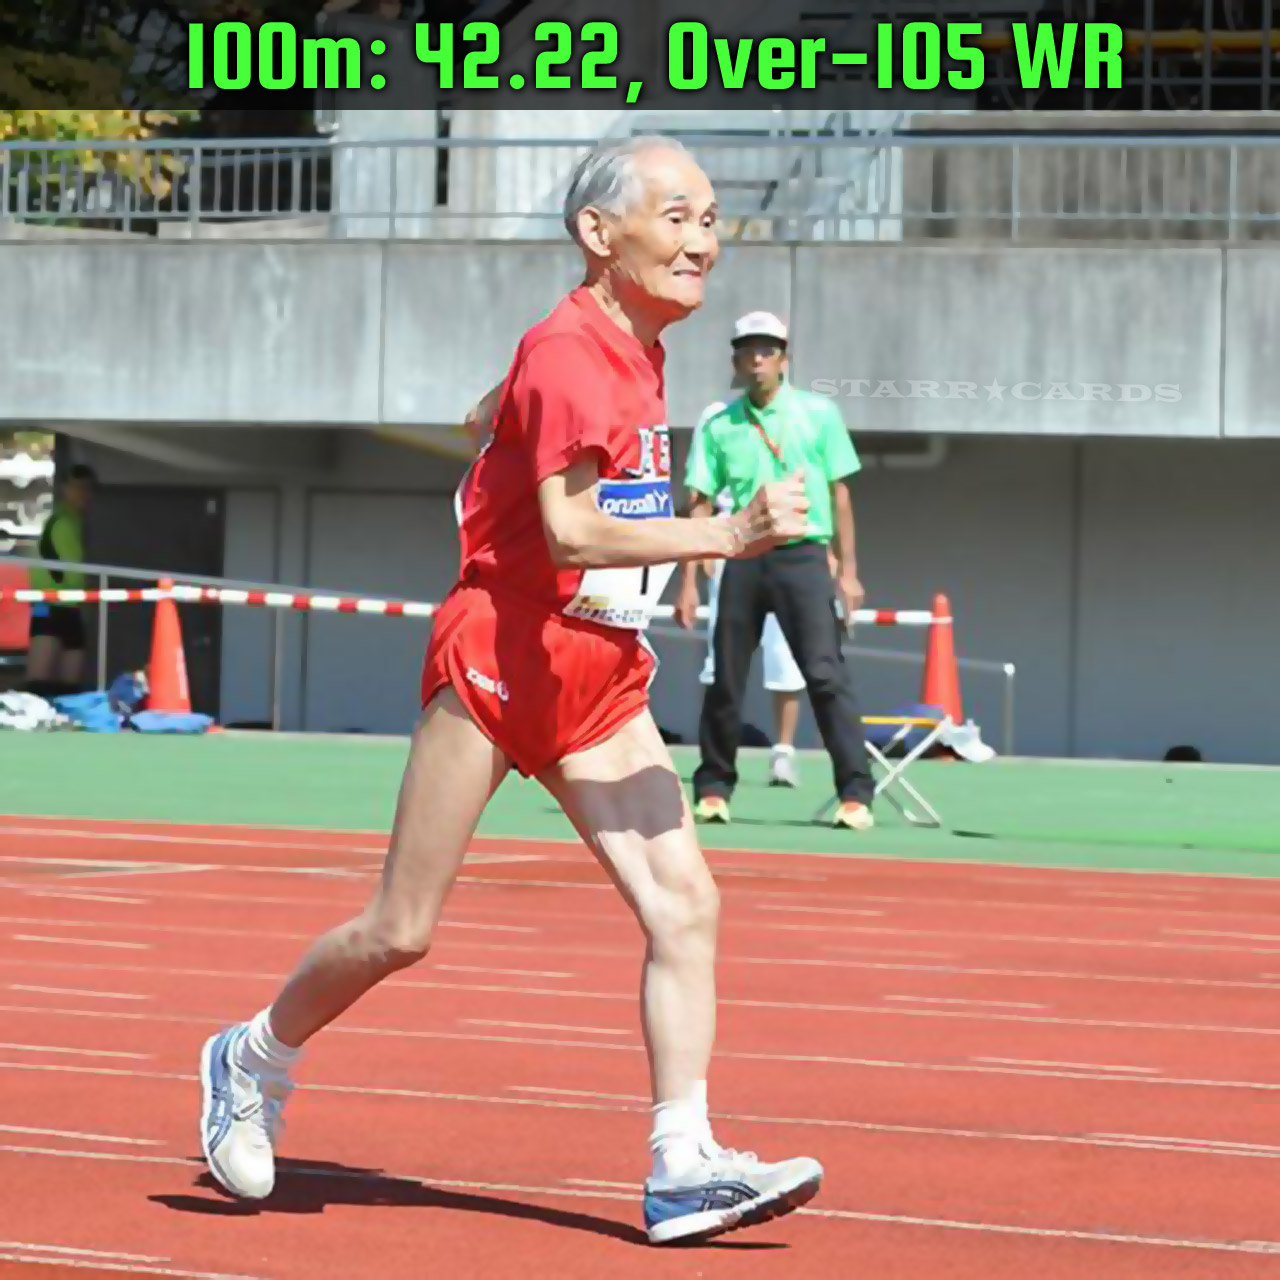 World's oldest sprinter Miyazaki Hidekichi sets 100m record for 105-year-olds